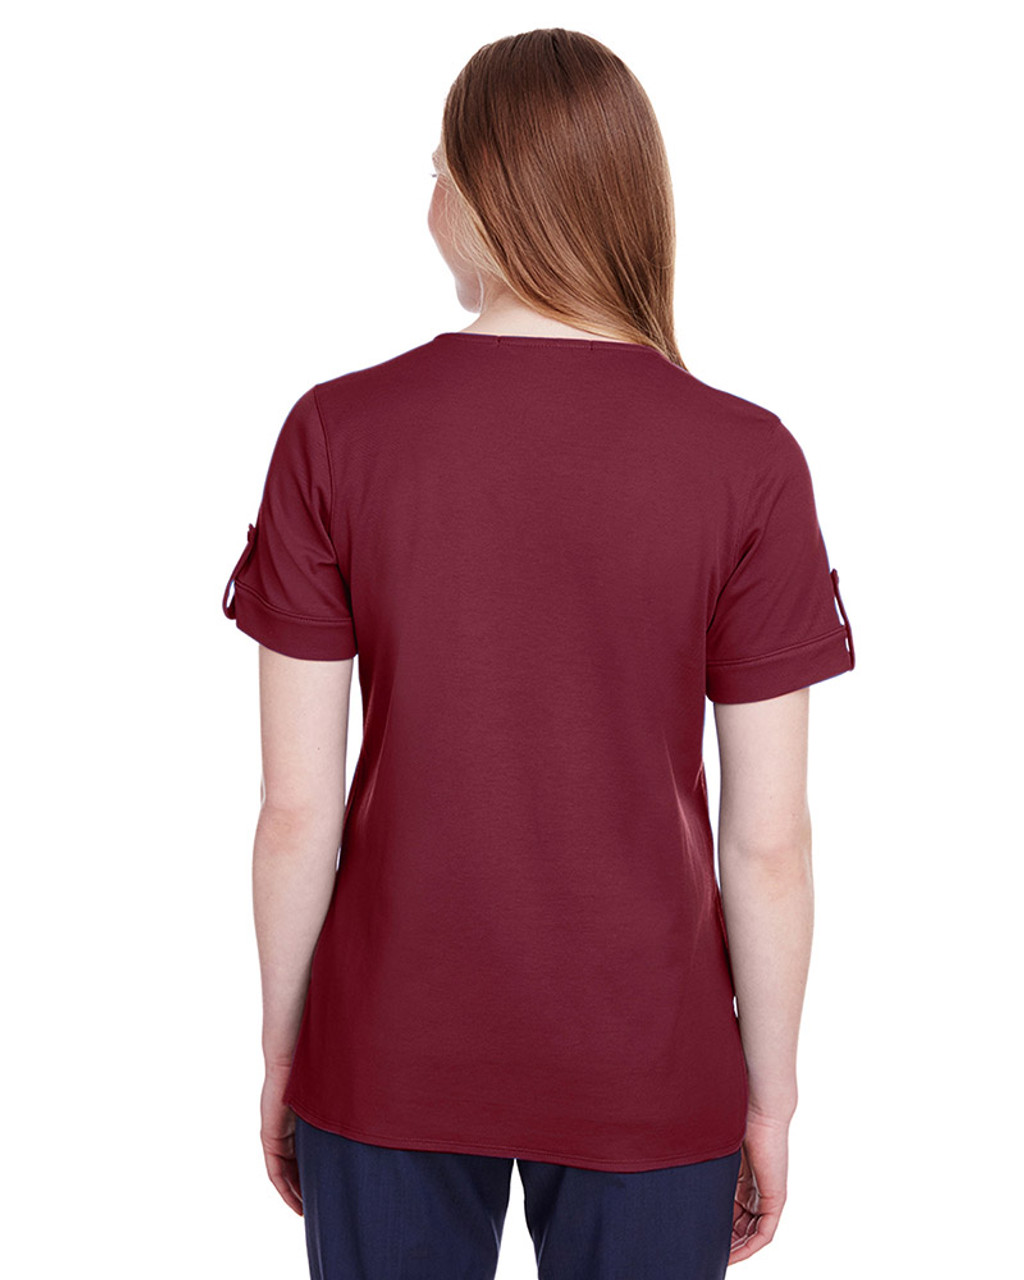 Burgundy - back, DG20WB Devon & Jones Ladies' CrownLux Performance™ Plaited Rolled-Sleeve Top | Blankclothing.ca